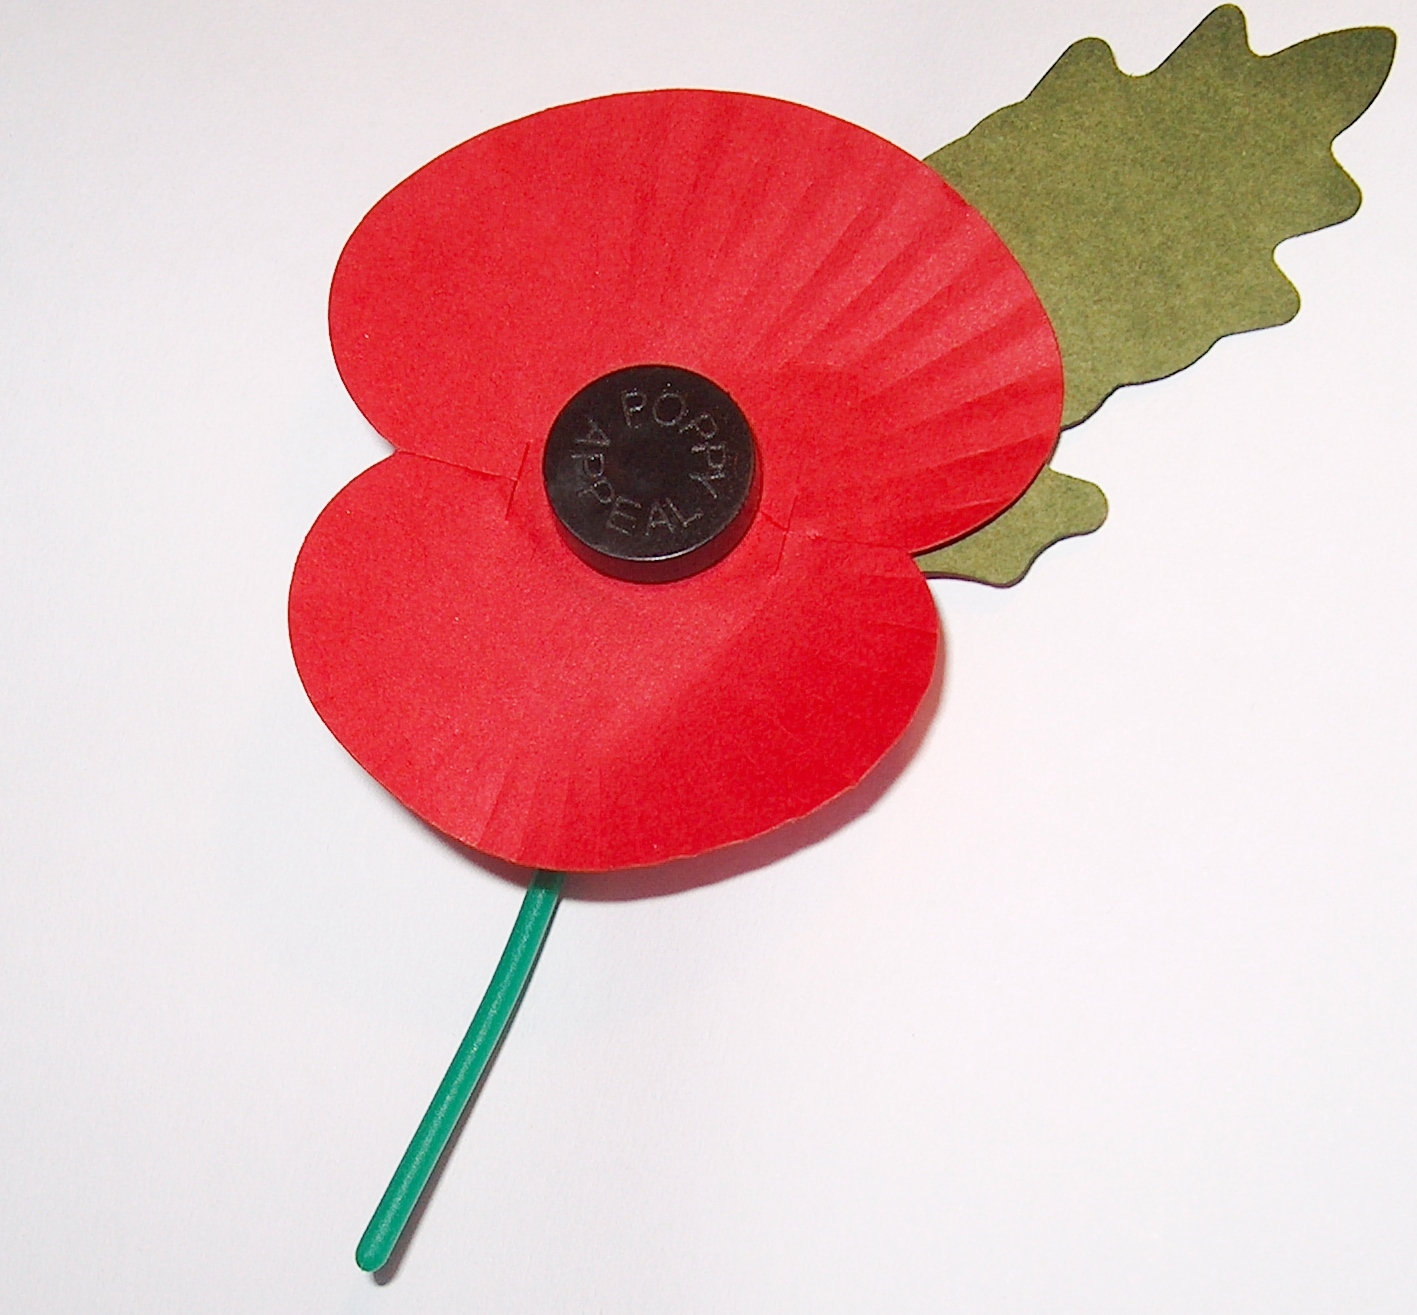 Memorial Day Wear Your Poppy Harvey Designs Event And